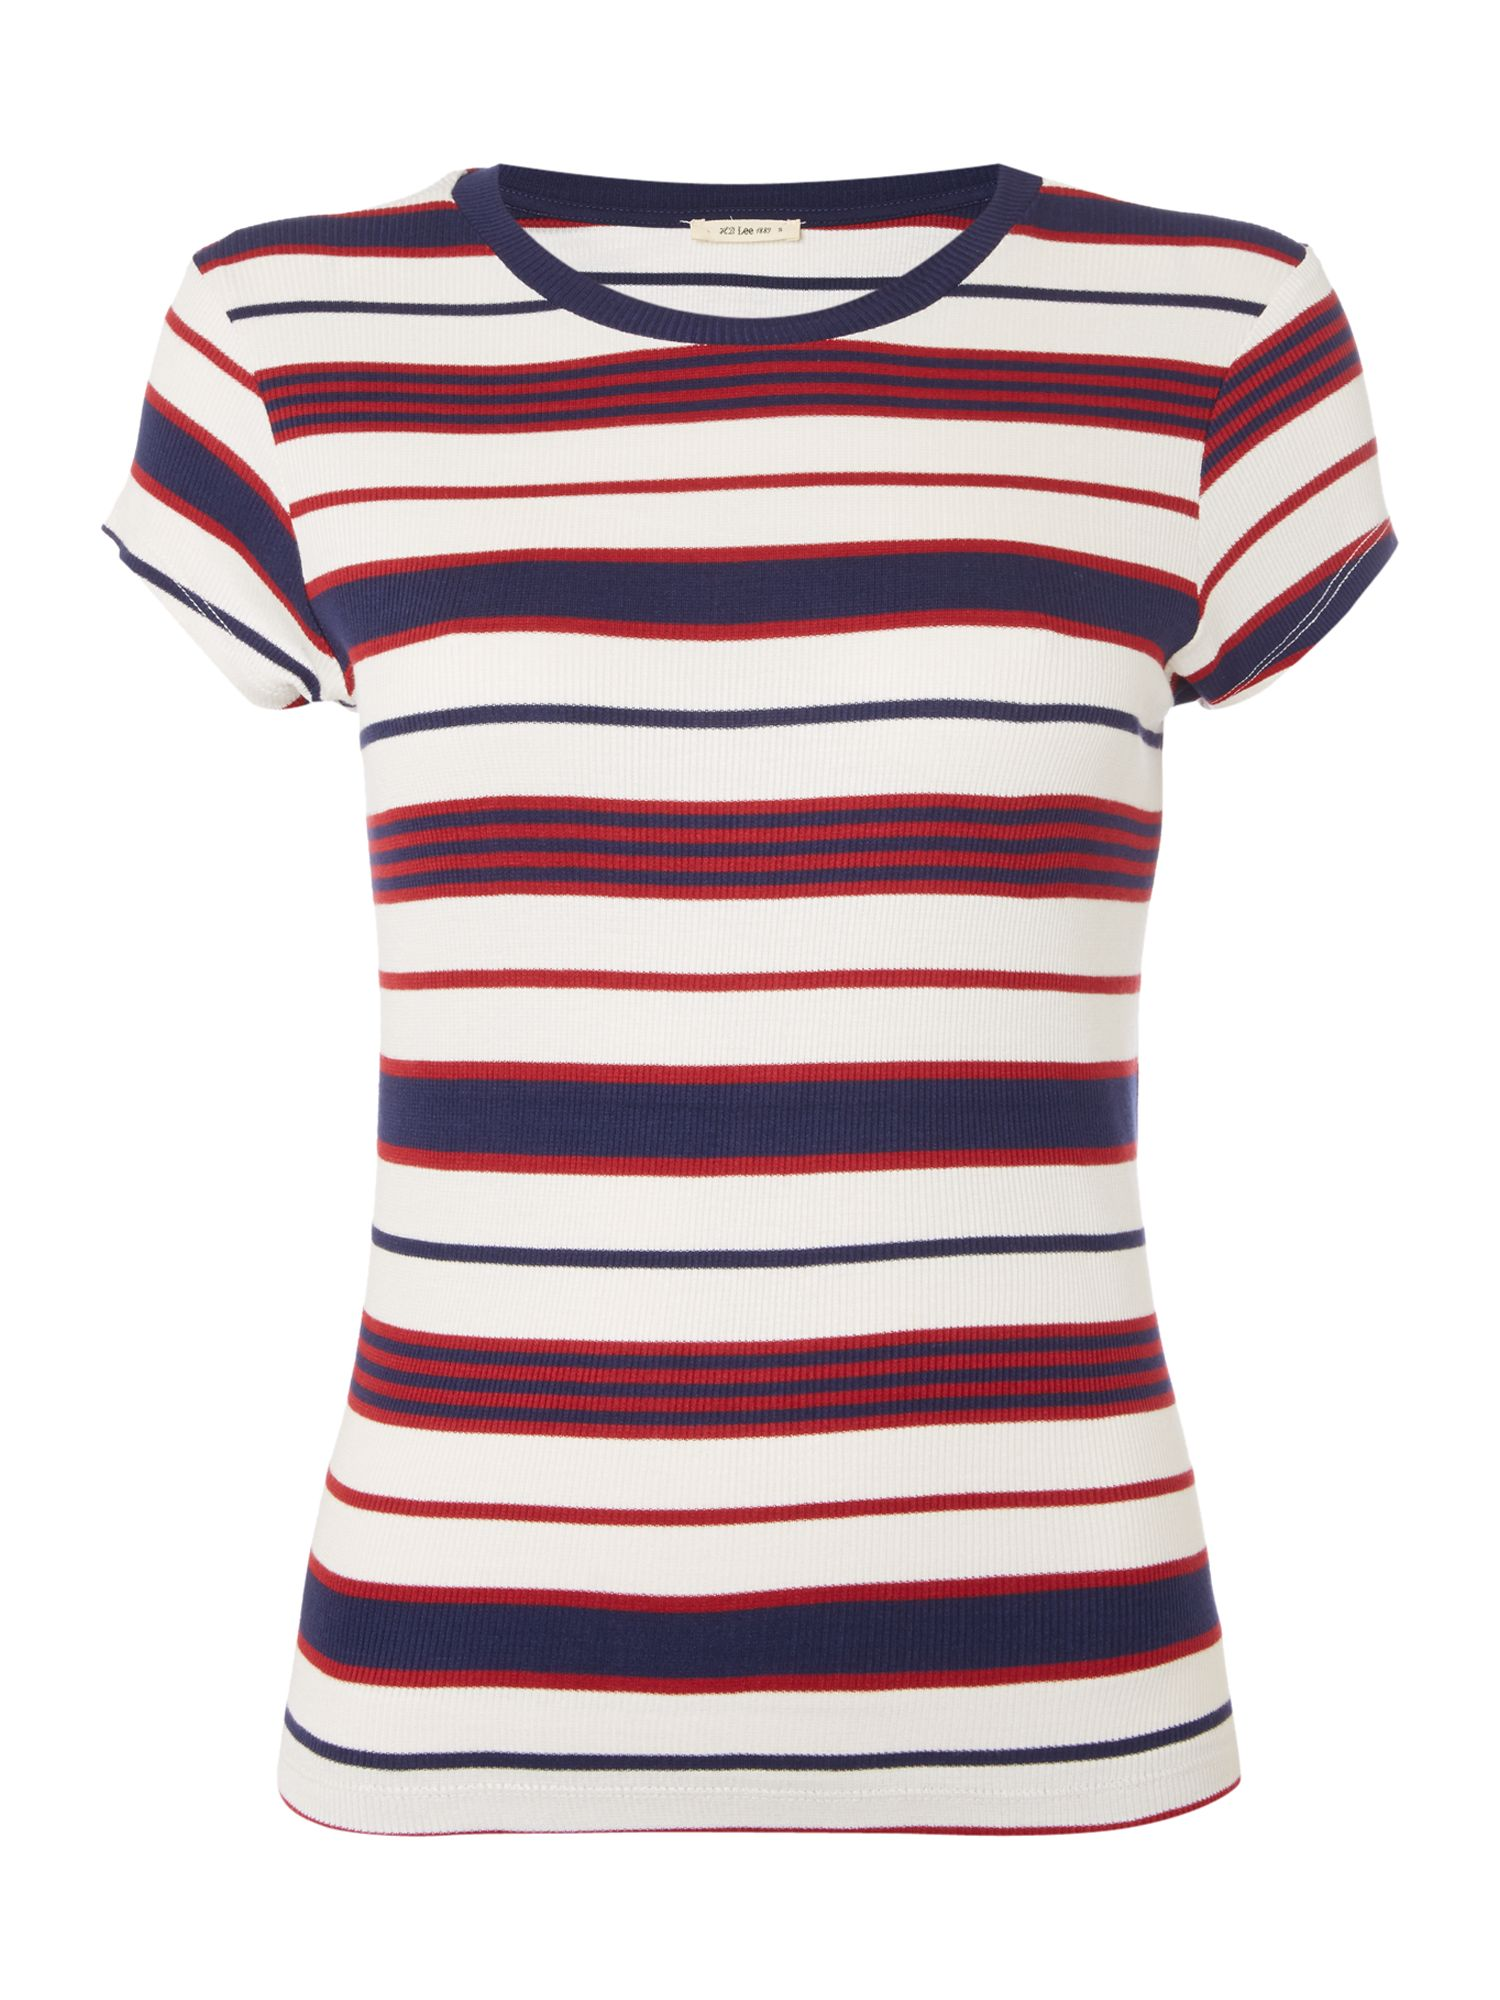 Lee Stripe Tee In State Blue, Multi-Coloured